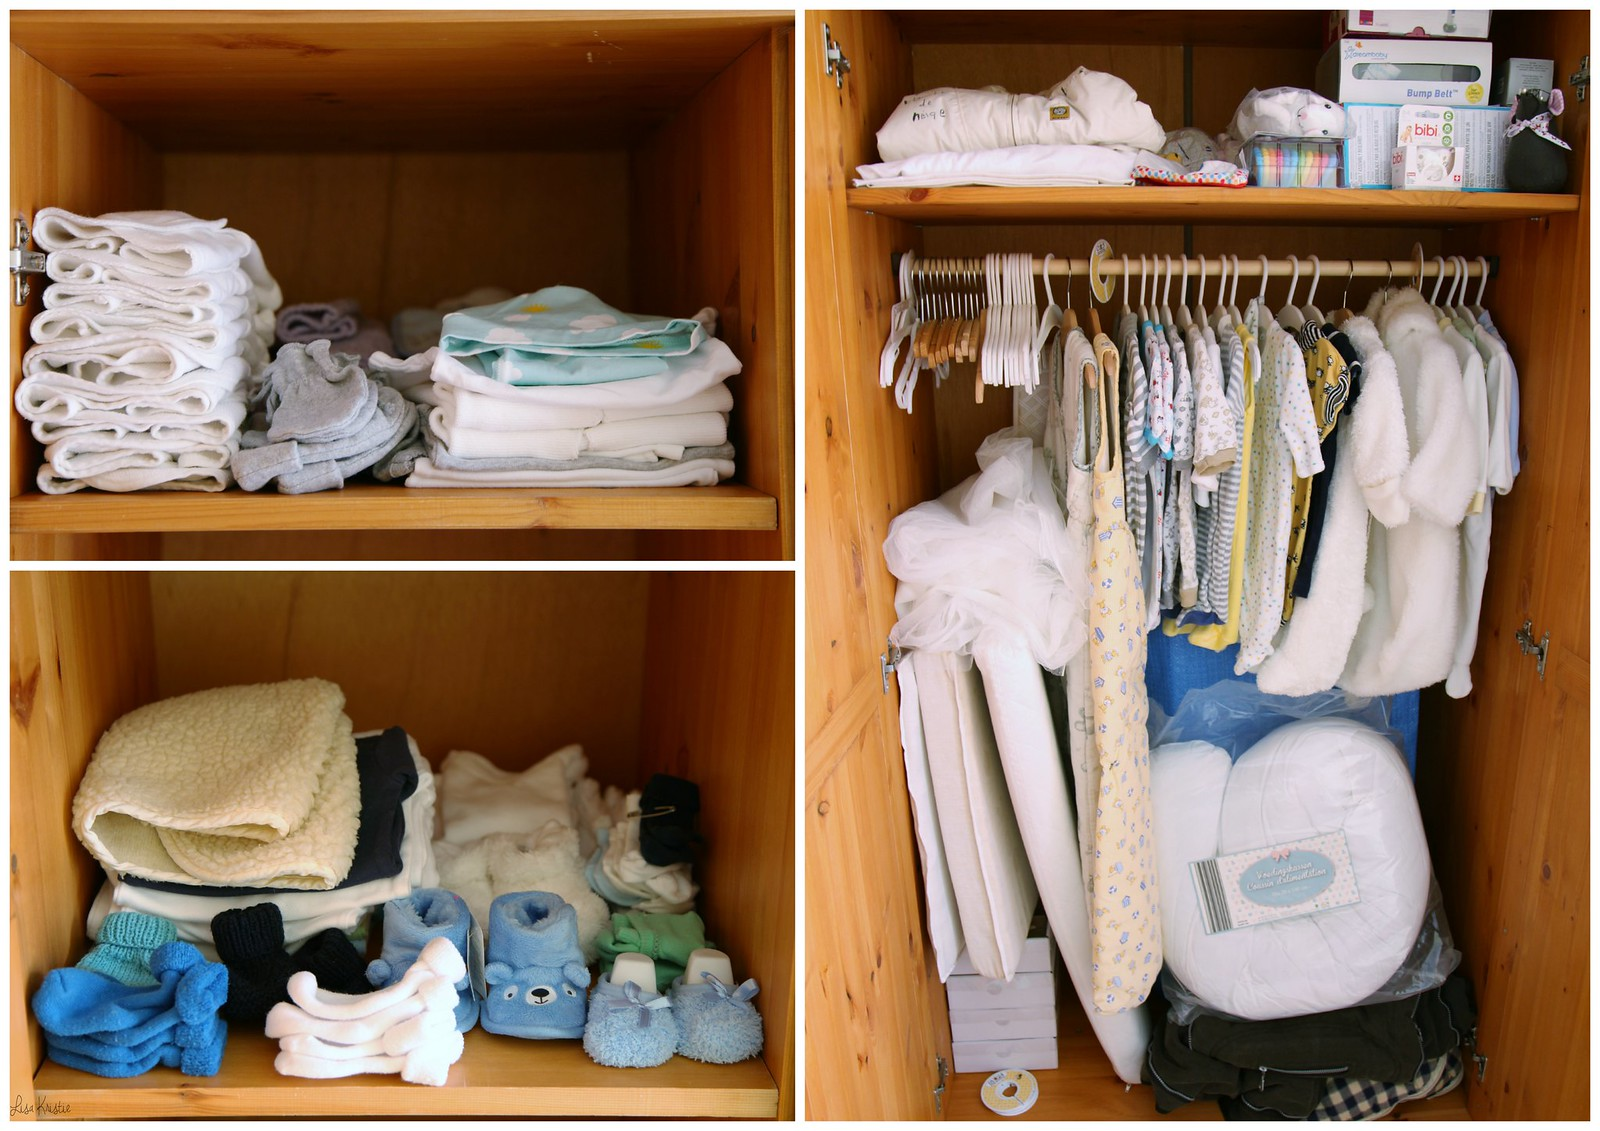 baby closet wardrobe clothes onesies socks shoes sleepers stuff shelf hanger